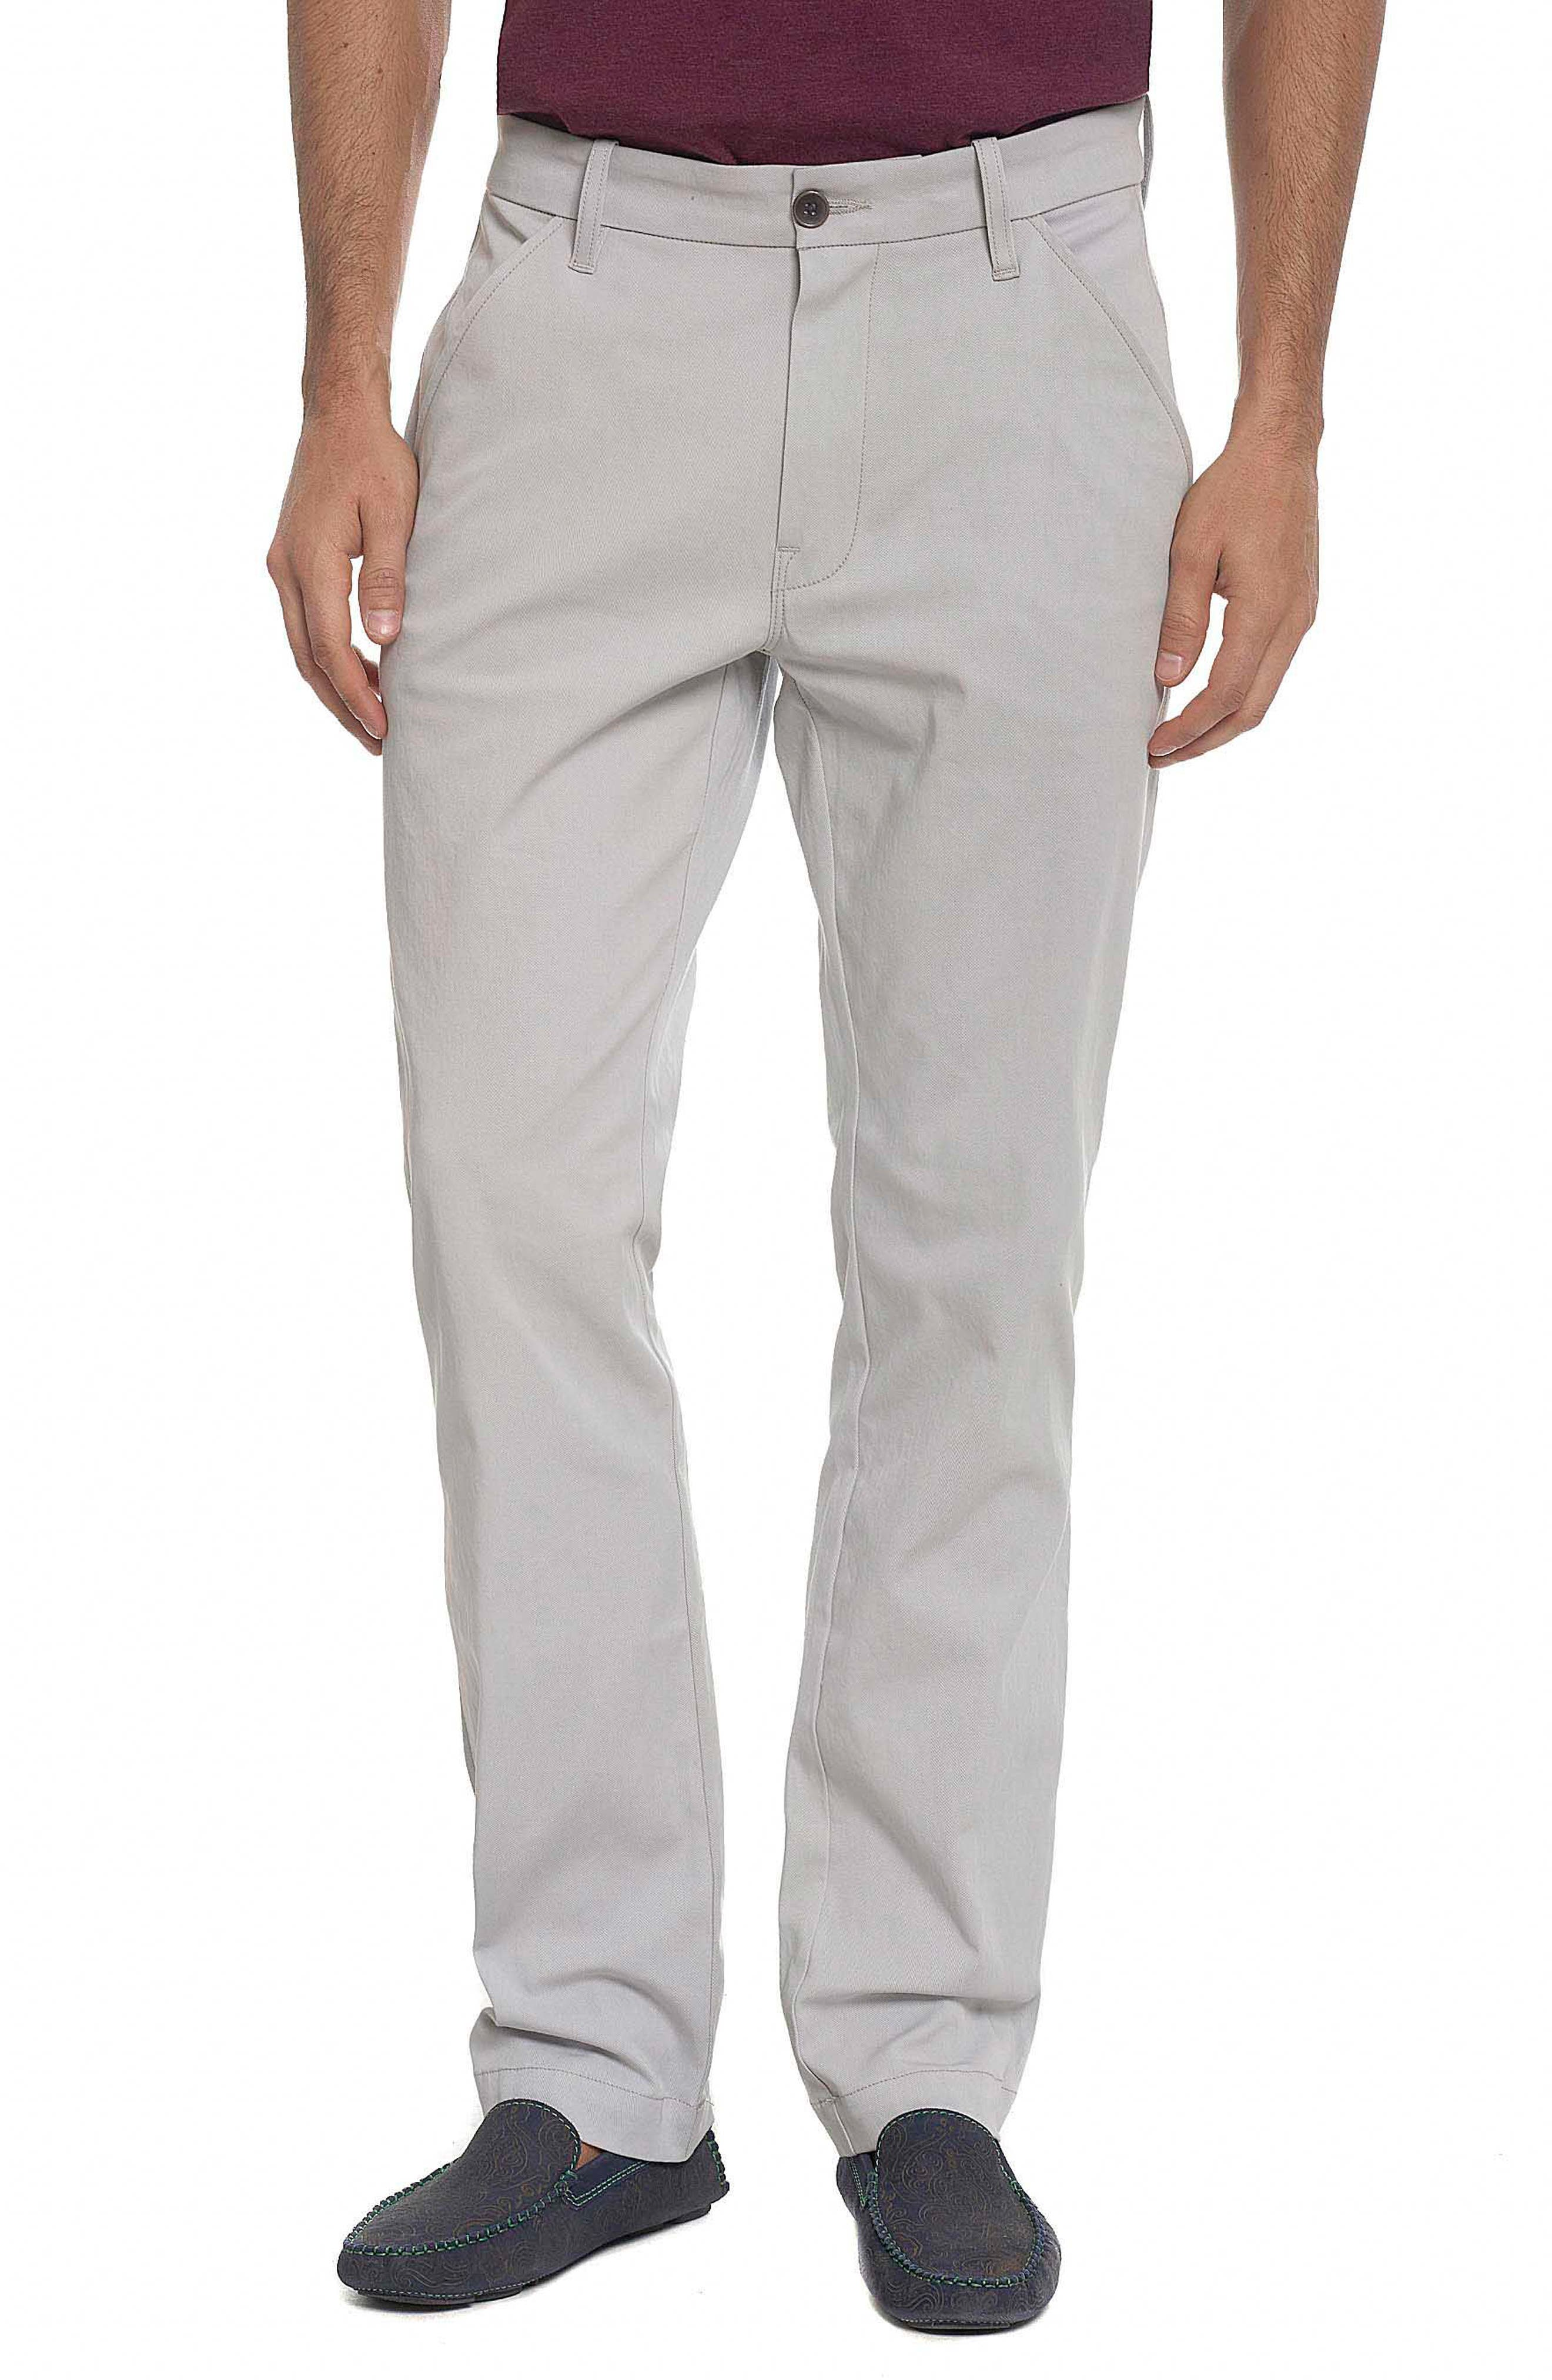 Layton Tailored Fit Stretch Cotton Pants,                         Main,                         color,